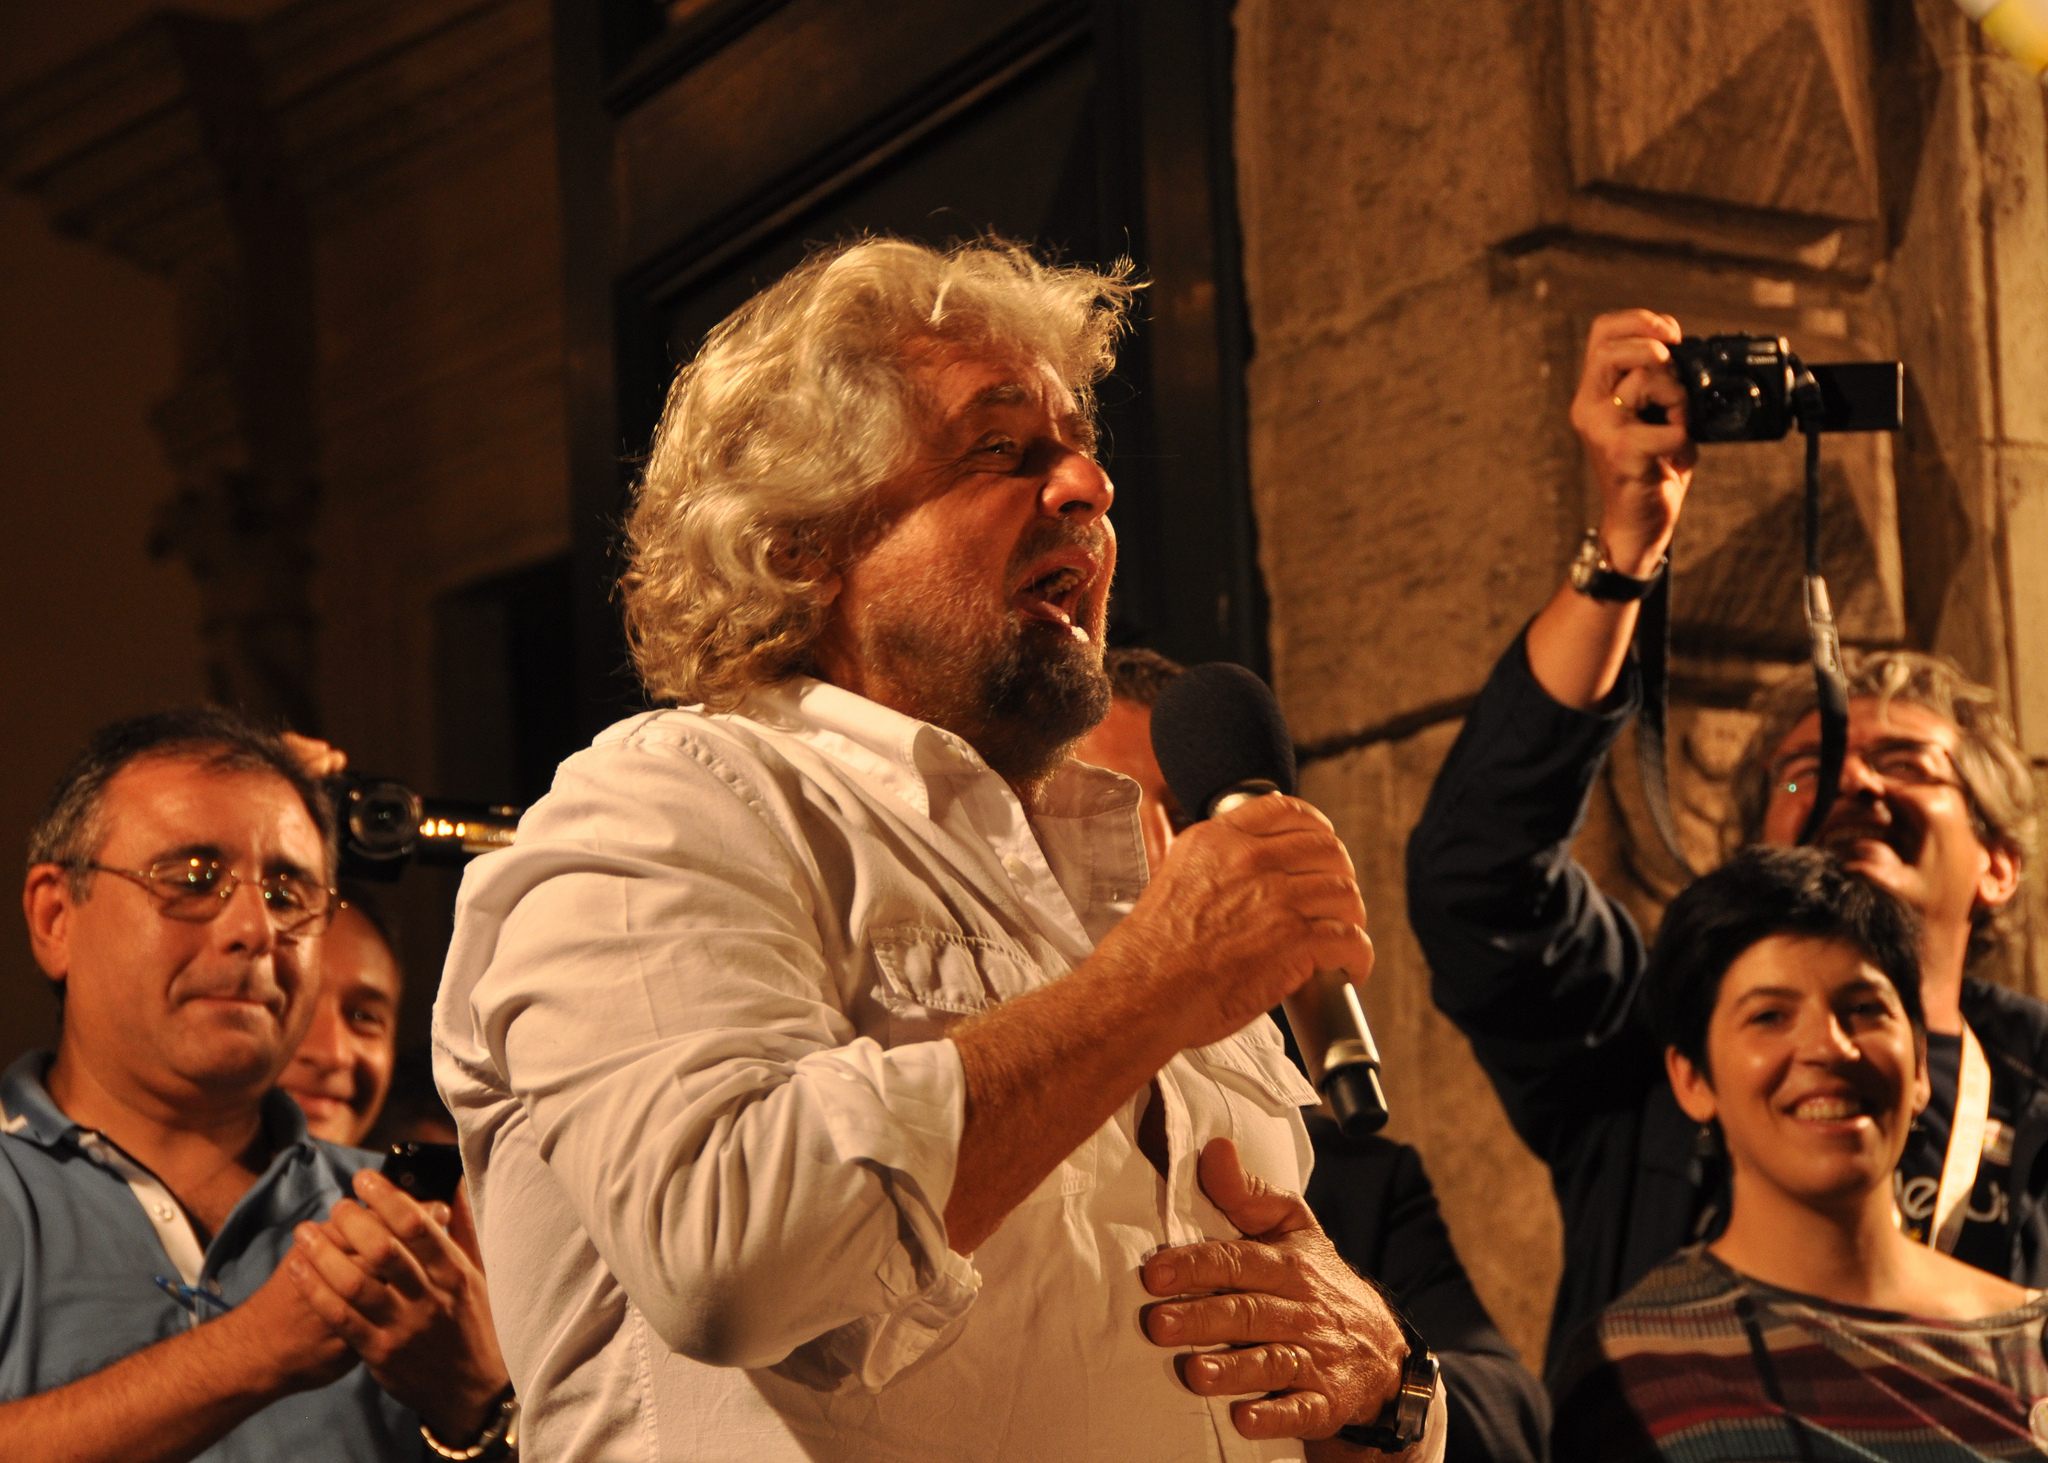 Beppe Grillo of the Cinque Stelle Movement